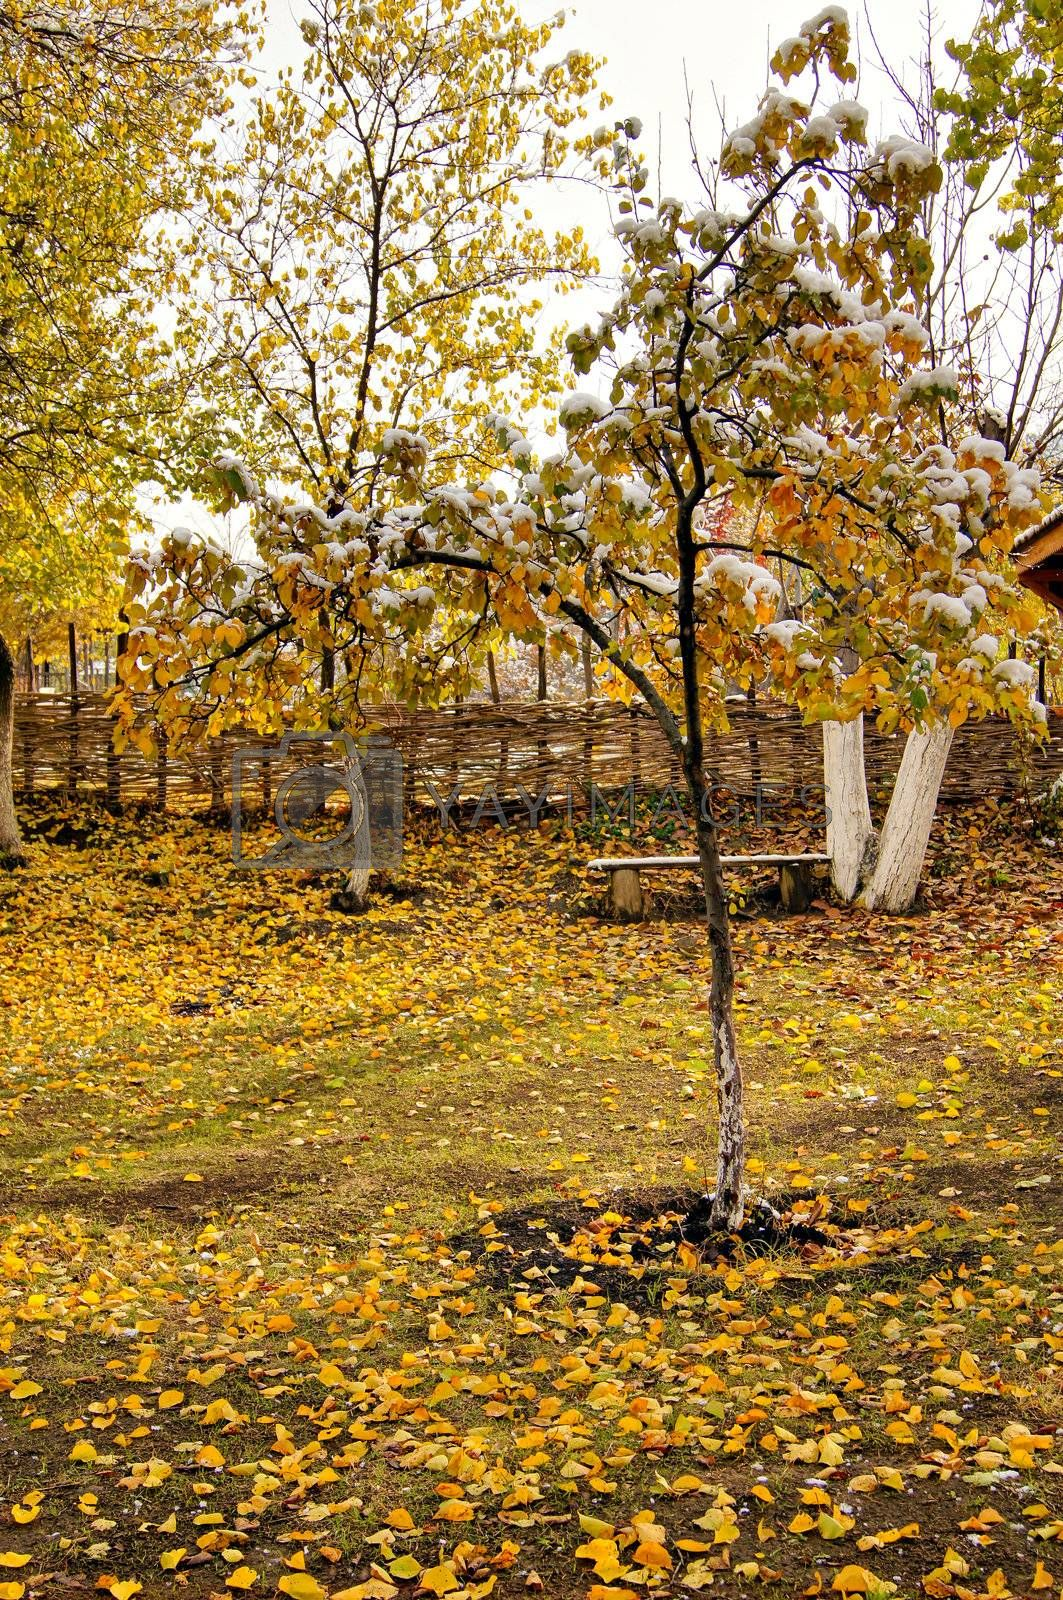 Autumn time: colorful leaves of the tree covered with snow